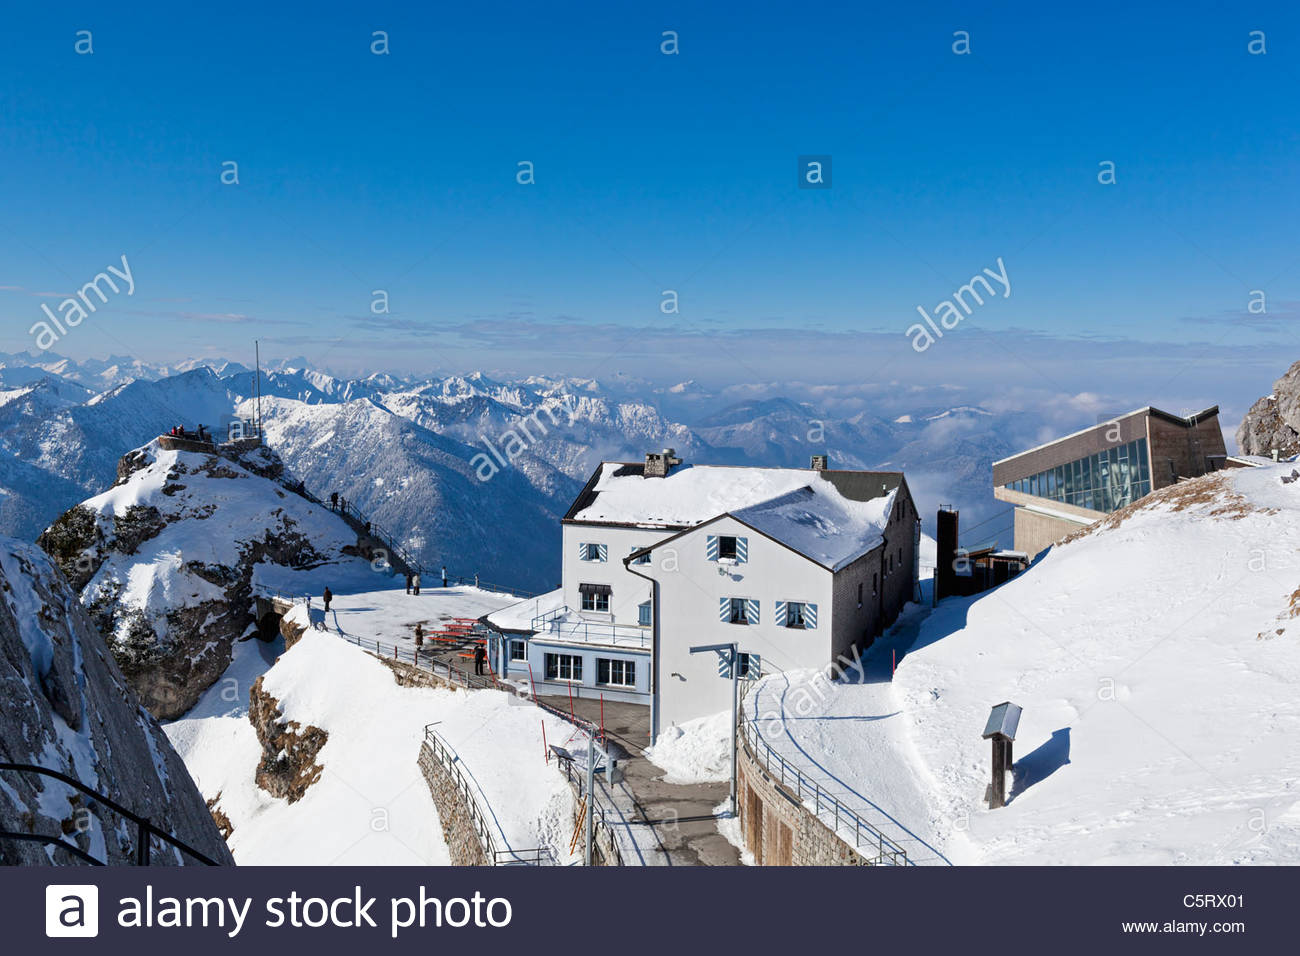 South Germany, Upper Bavaria, Bayrischzell, View of house, restaurant and cable car station on Wendelstein mountain - Stock Image